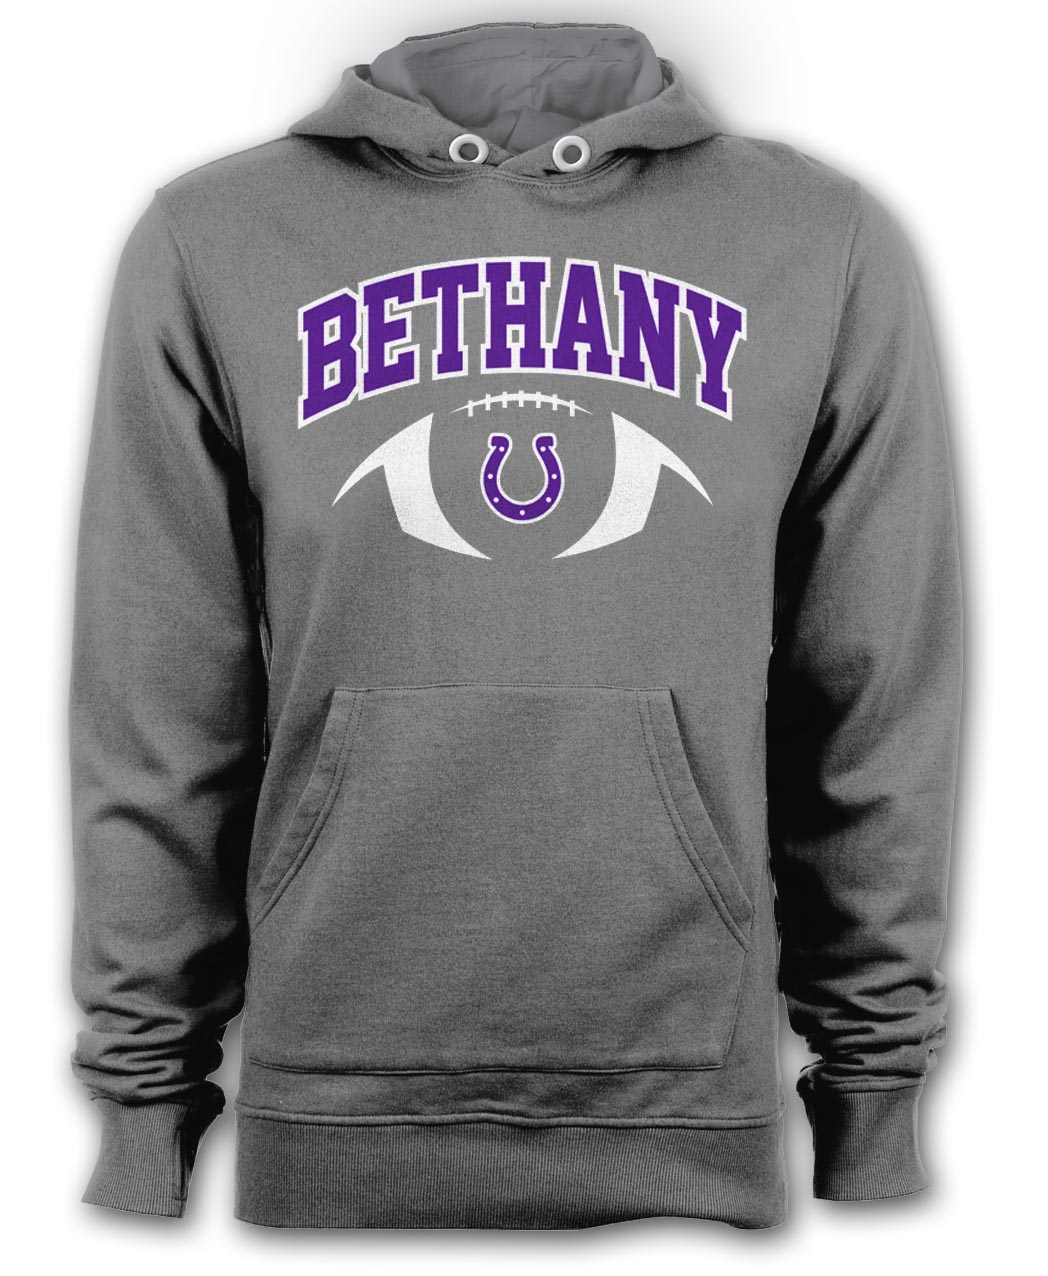 Bethany Colts Gray Hoodie